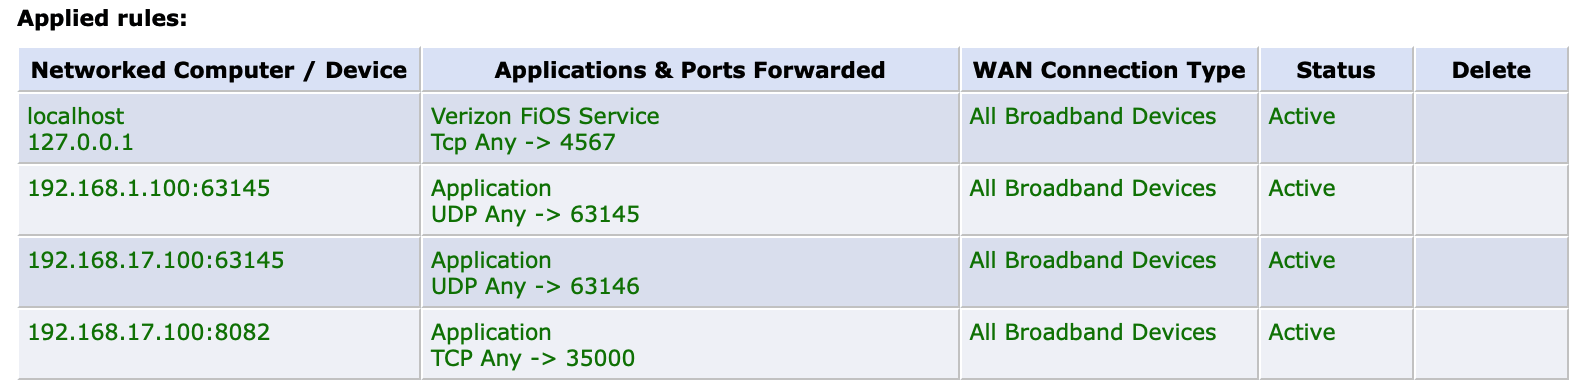 Old port forwarding rules